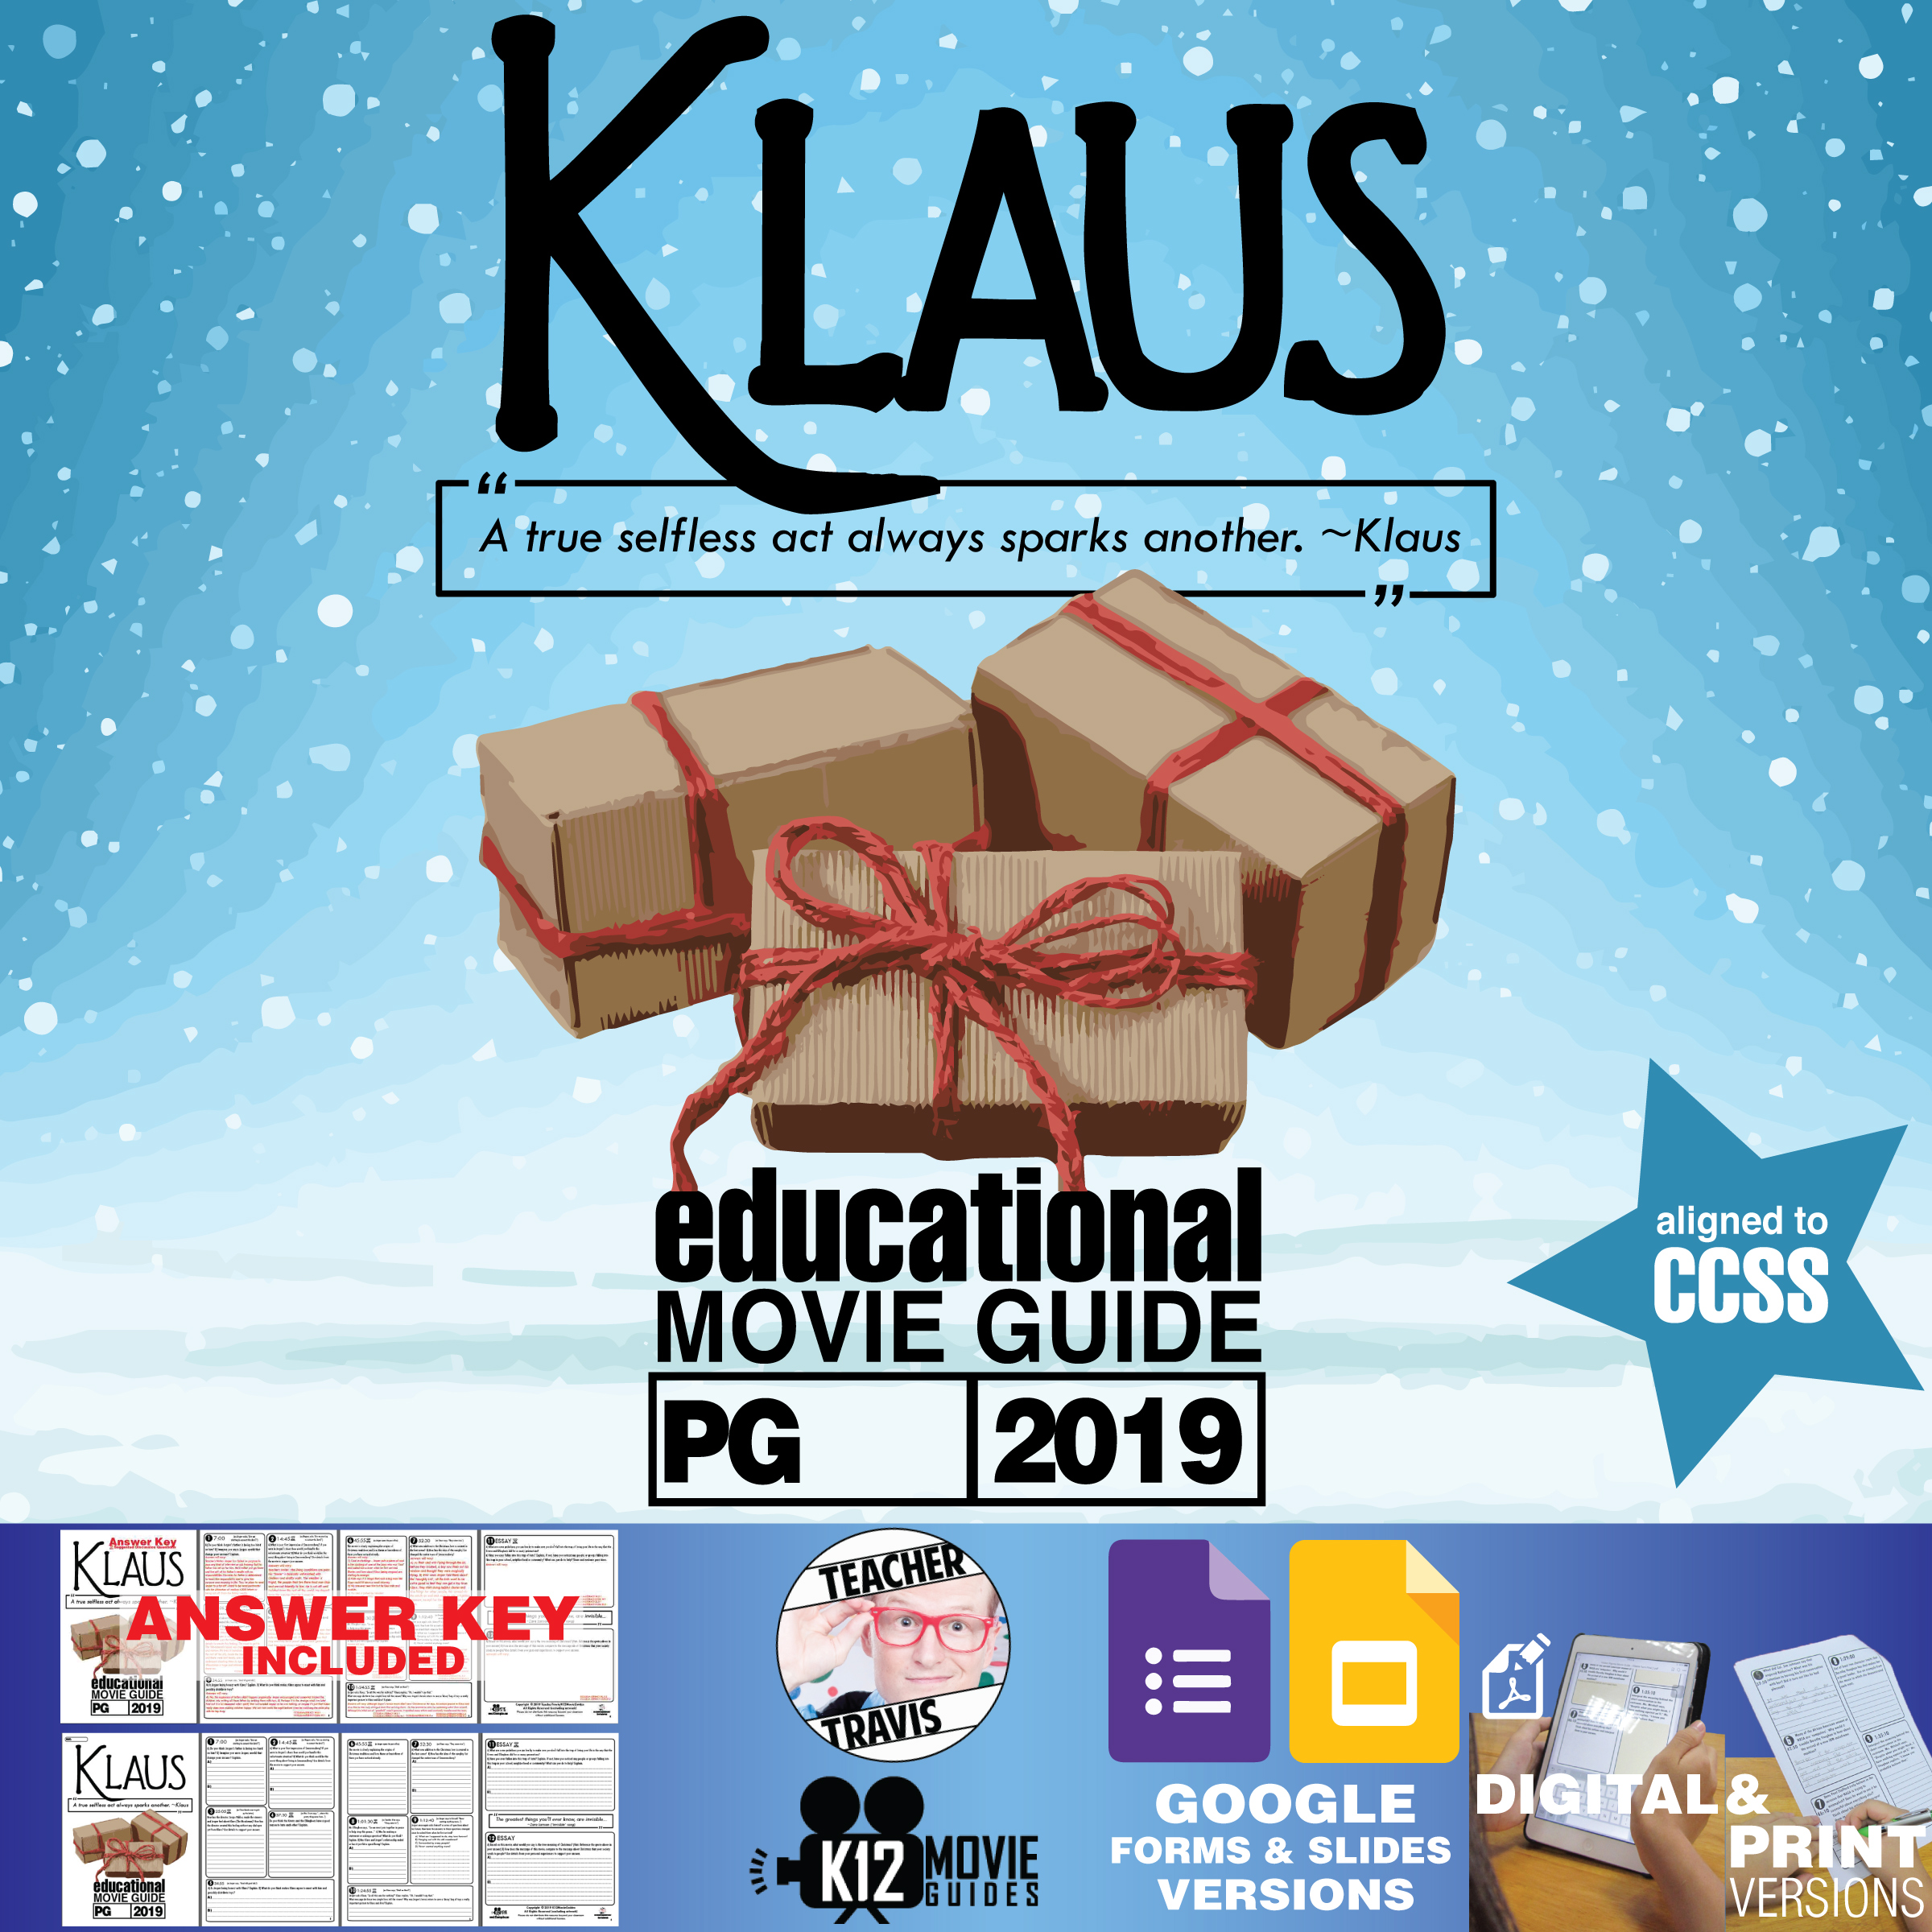 Klaus Movie Guide   Questions (PG - 2019) Cover